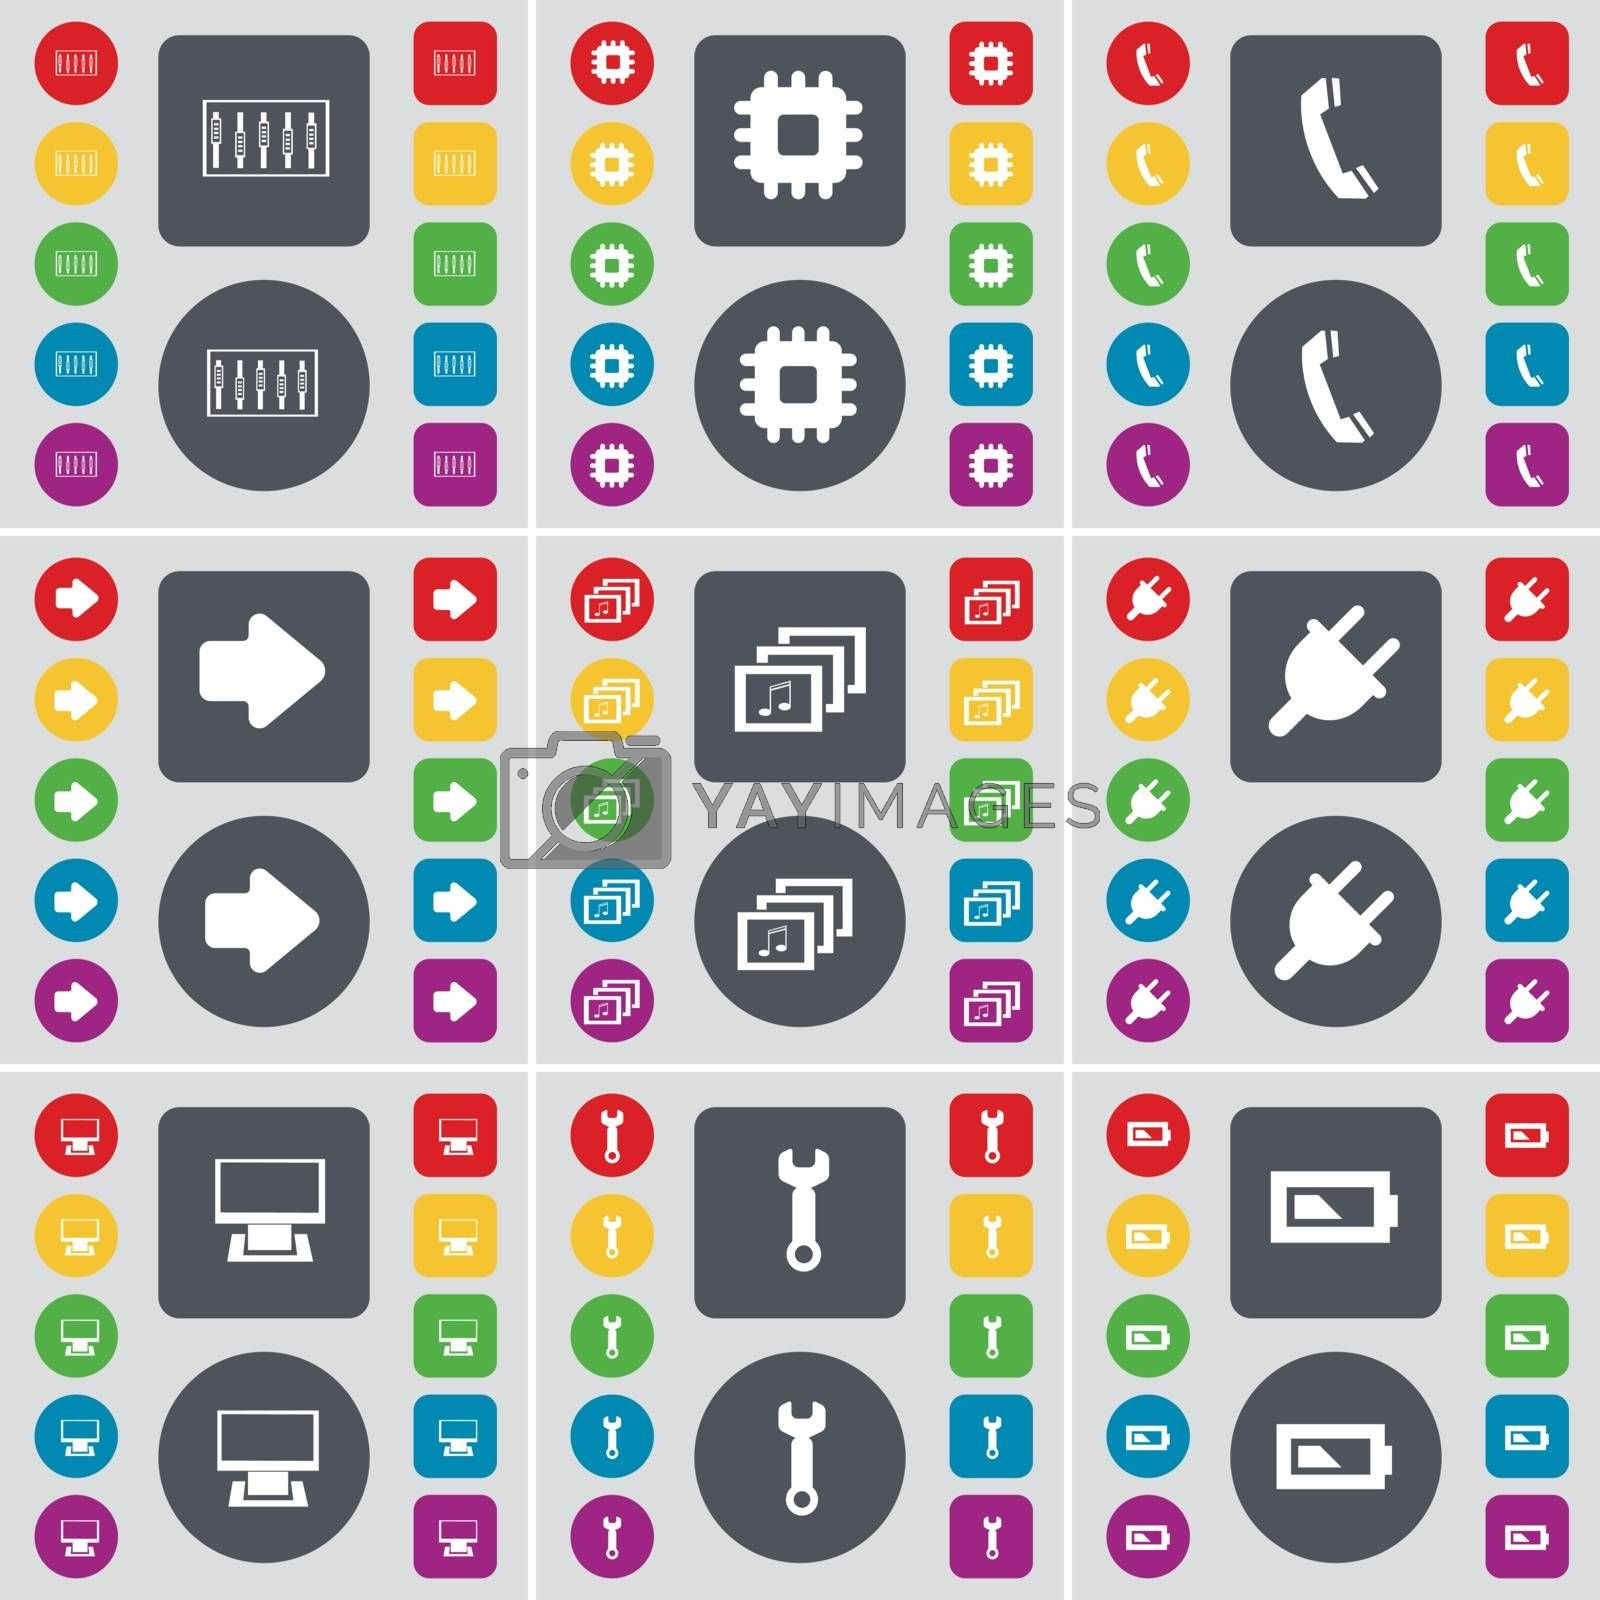 Royalty free image of Equalizer, Processor, Receiver, Arrow right, Gallery, Socket, Monitor, Wrench, Battery icon symbol. A large set of flat, colored buttons for your design. Vector by serhii_lohvyniuk